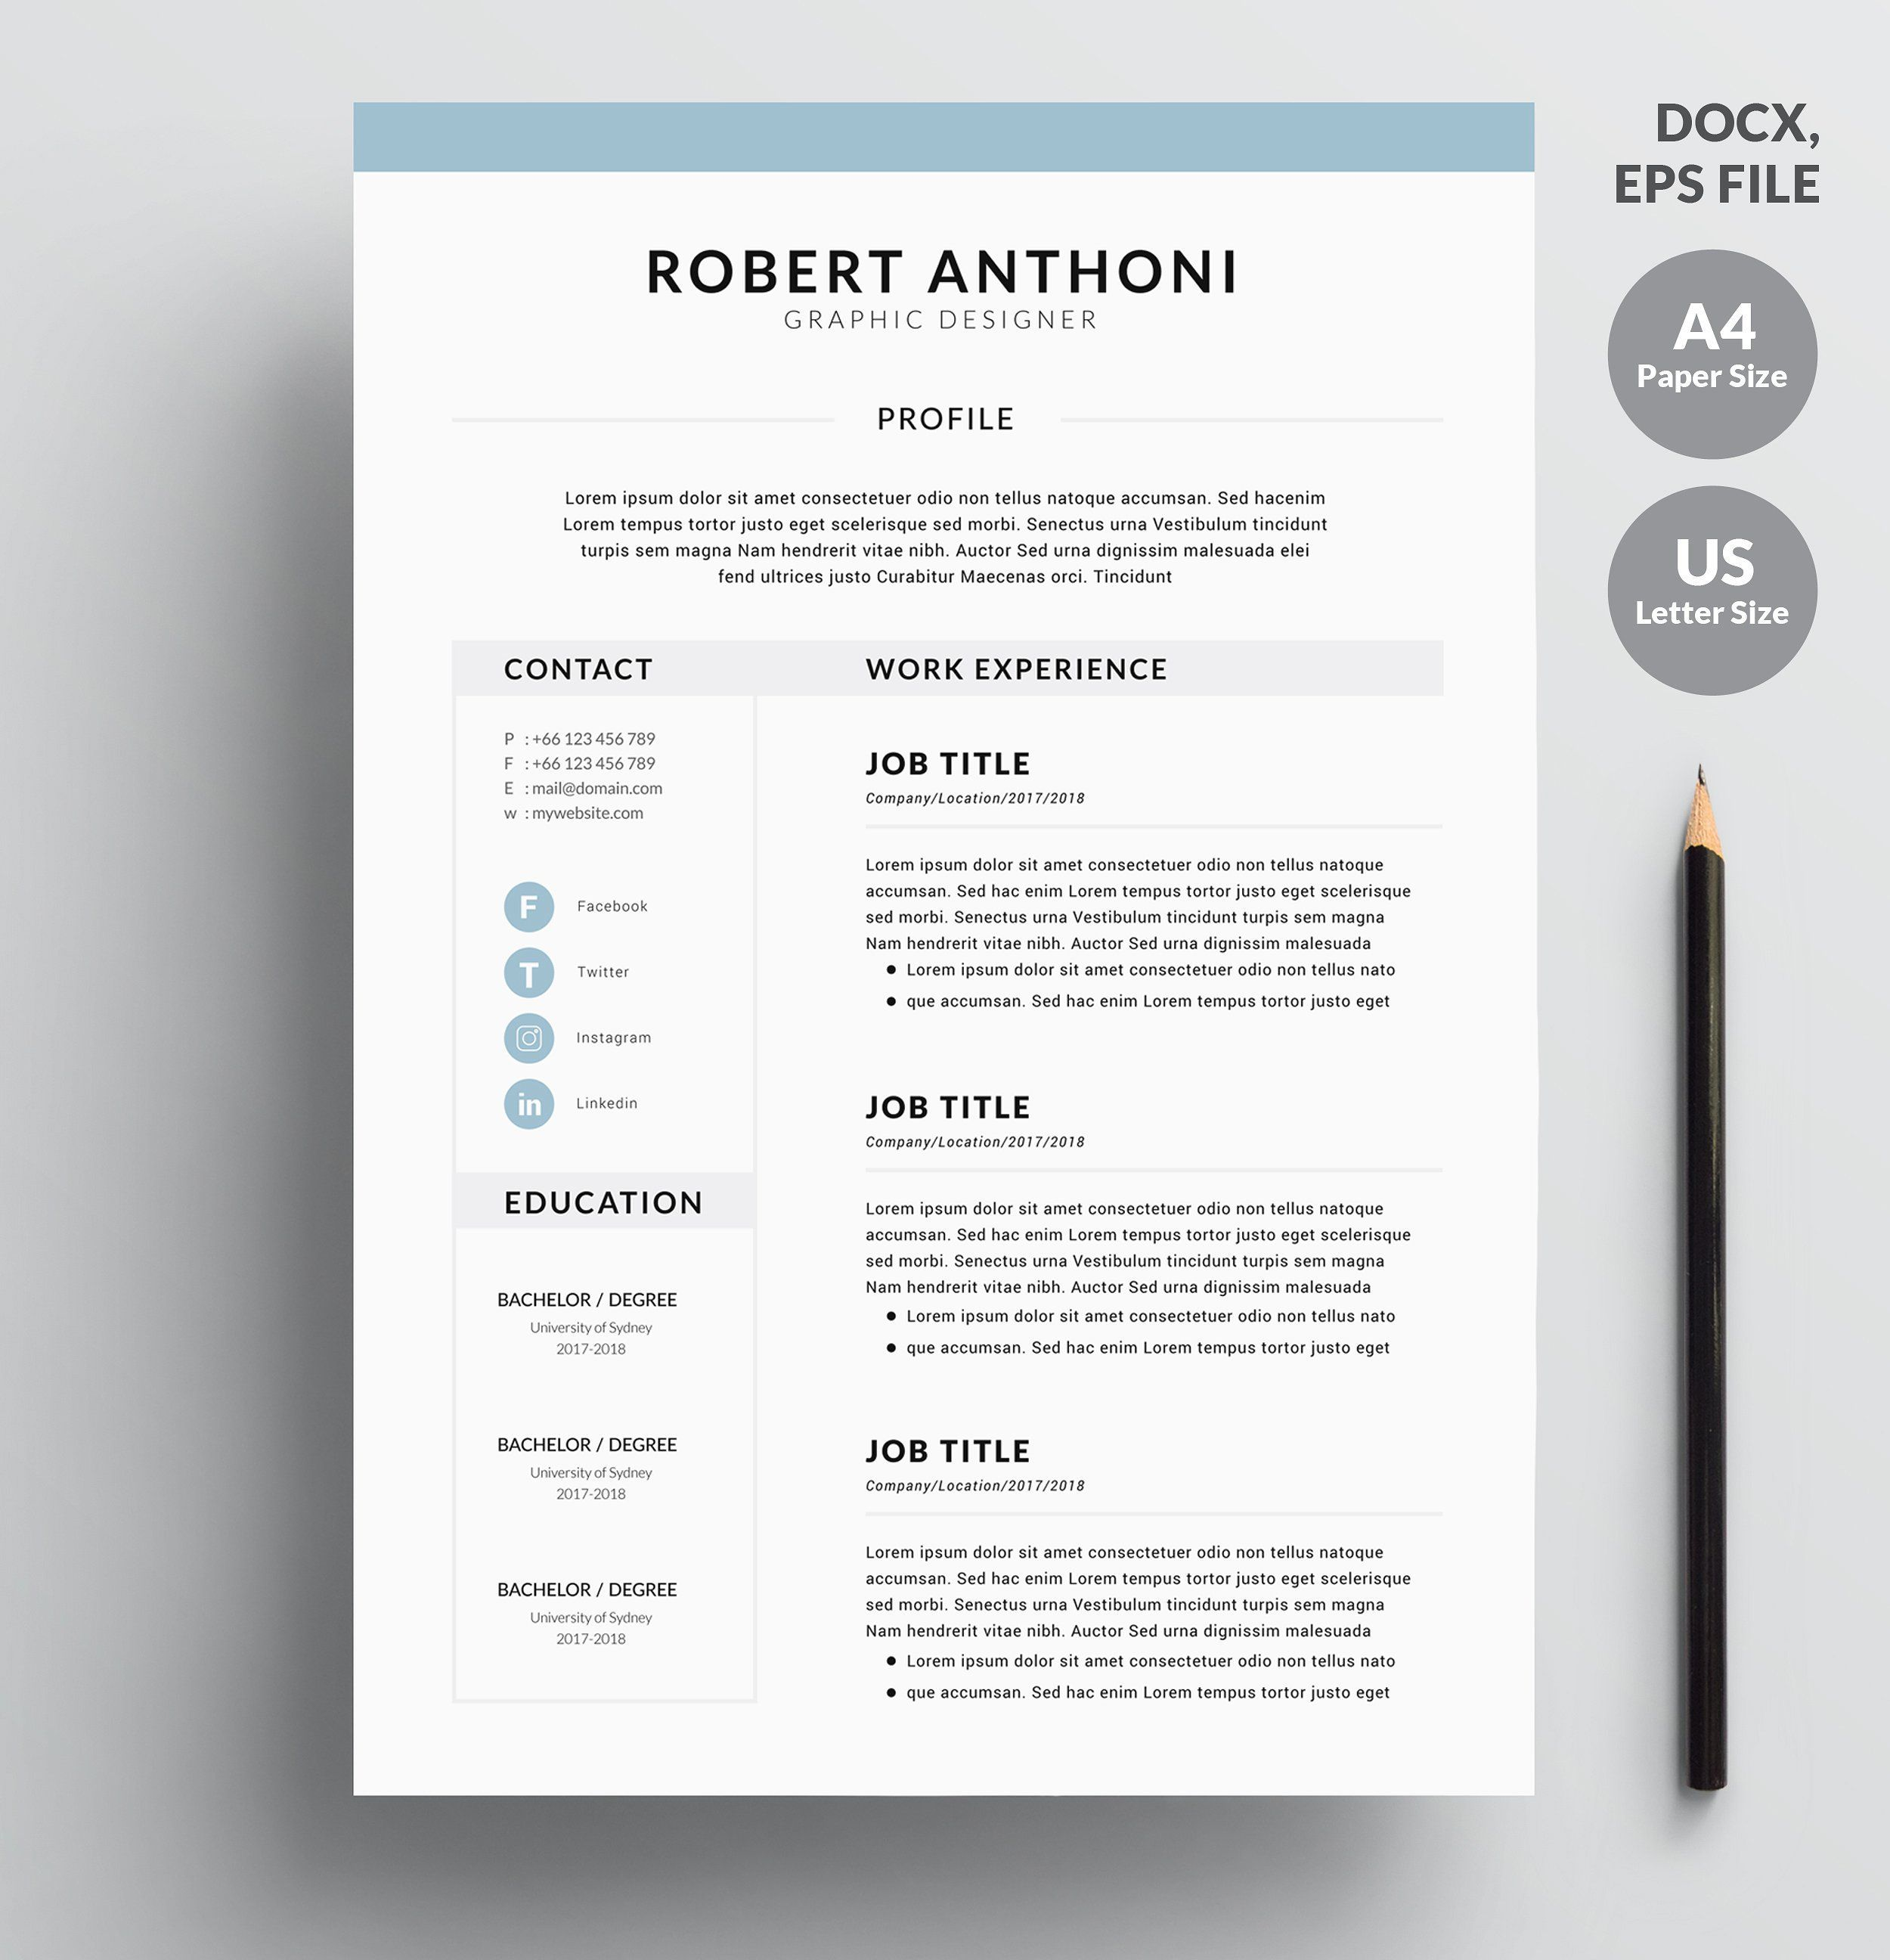 4 Page Resume CV Template For Word Make A Good And Creative First Impression With This Fully Editable Which Is Ready To Print